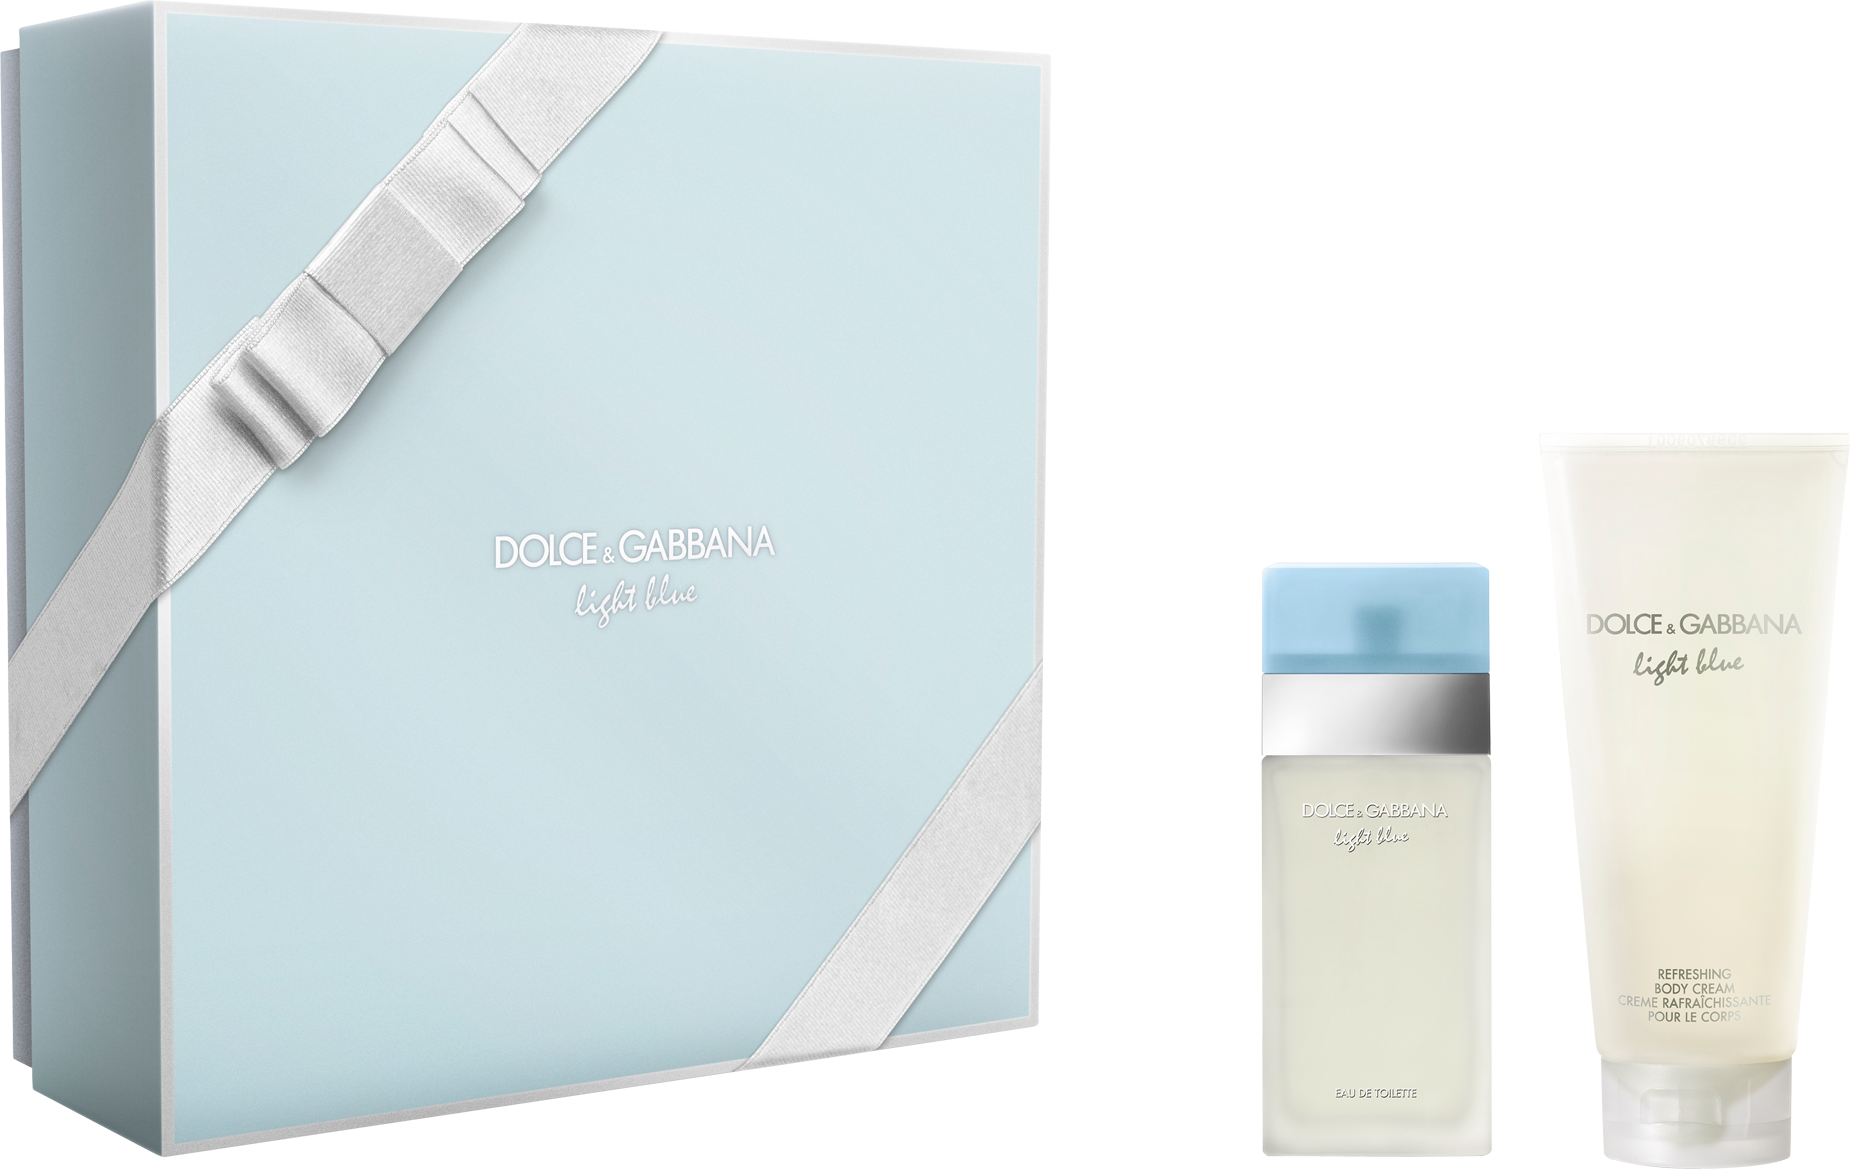 DOLCE & GABBANA LIGHT BLUE 2 PCS SET FOR WOMEN: 0.8 SP